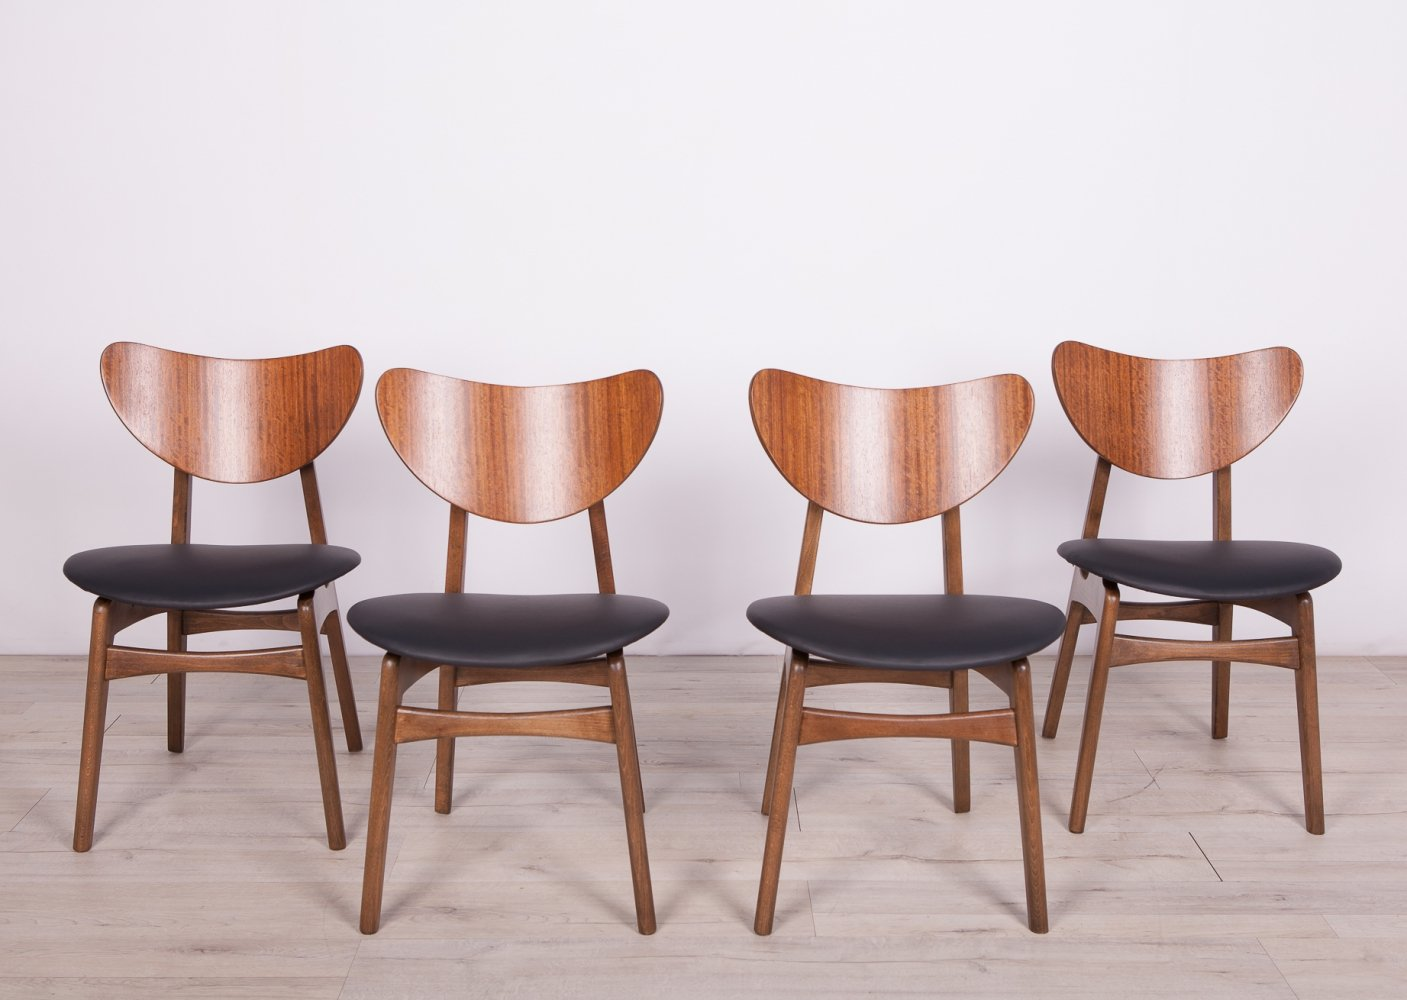 Set of 4 Mid-Century Librenza Dining Chairs from G-Plan, 1960s